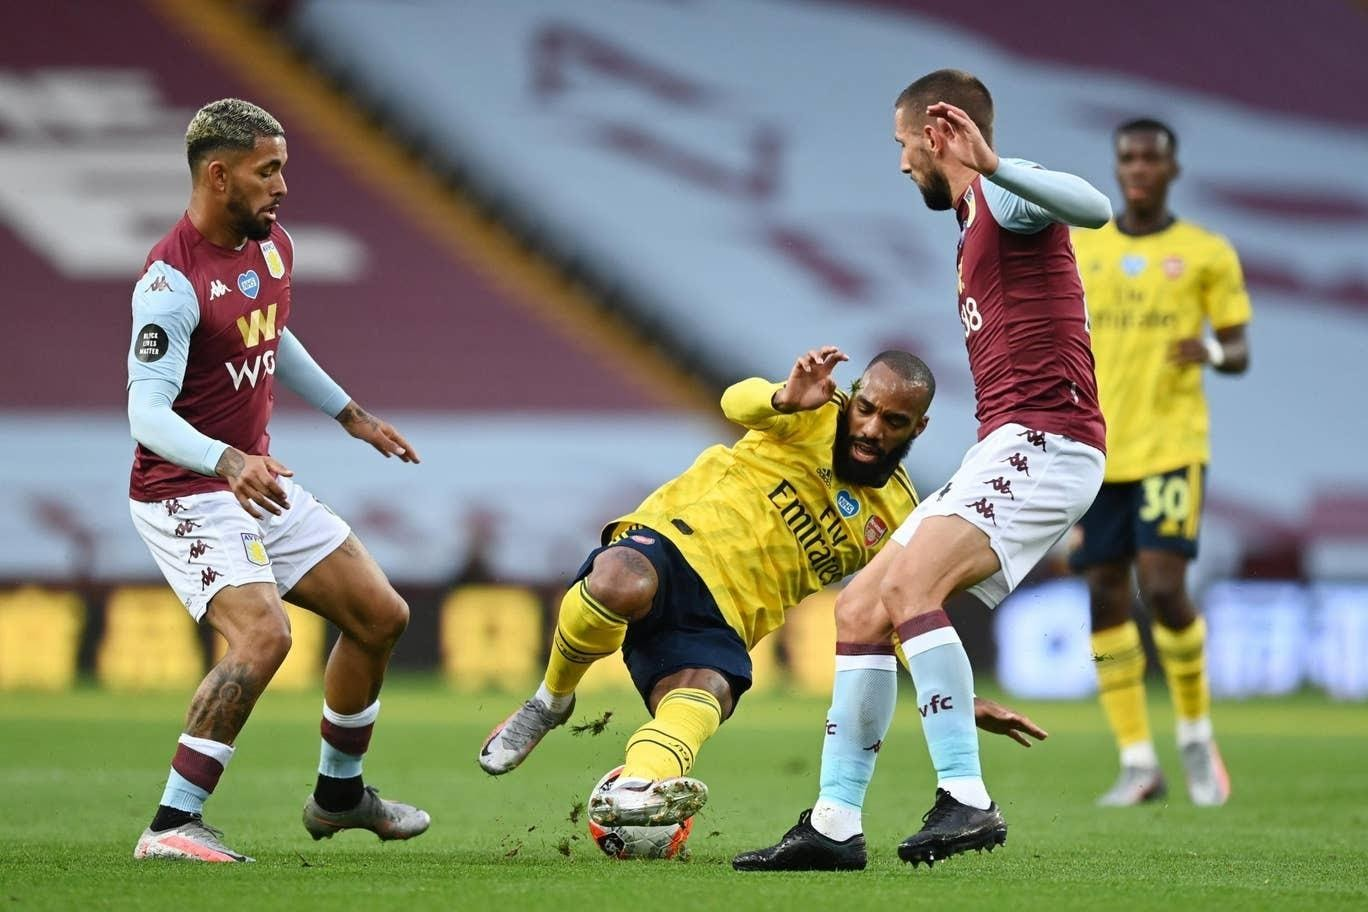 Aston Villa vs Aston Villa